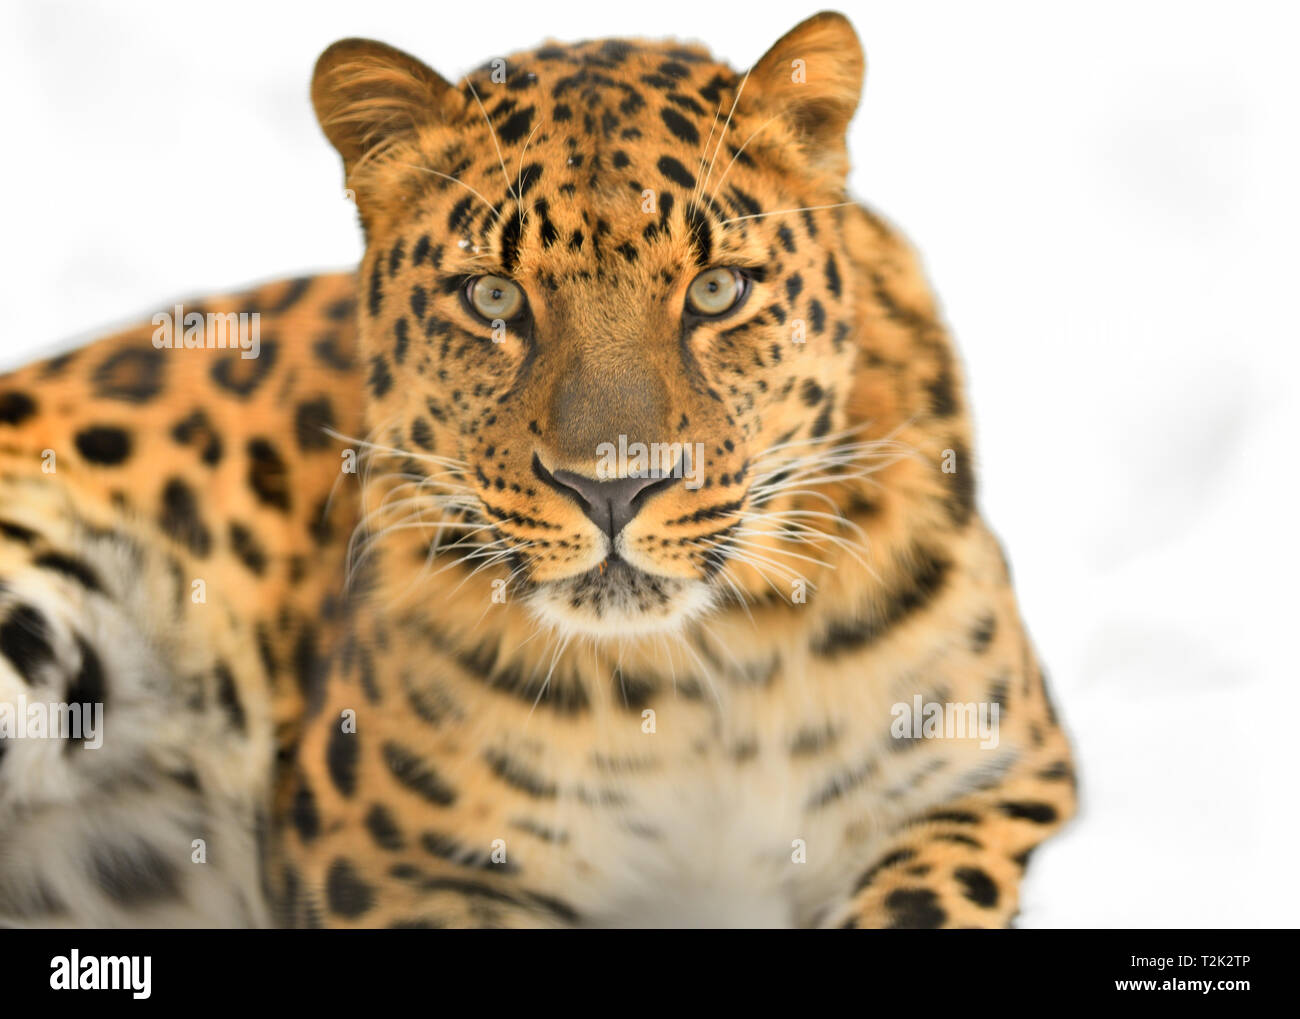 Far Eastern leopard. - Stock Image